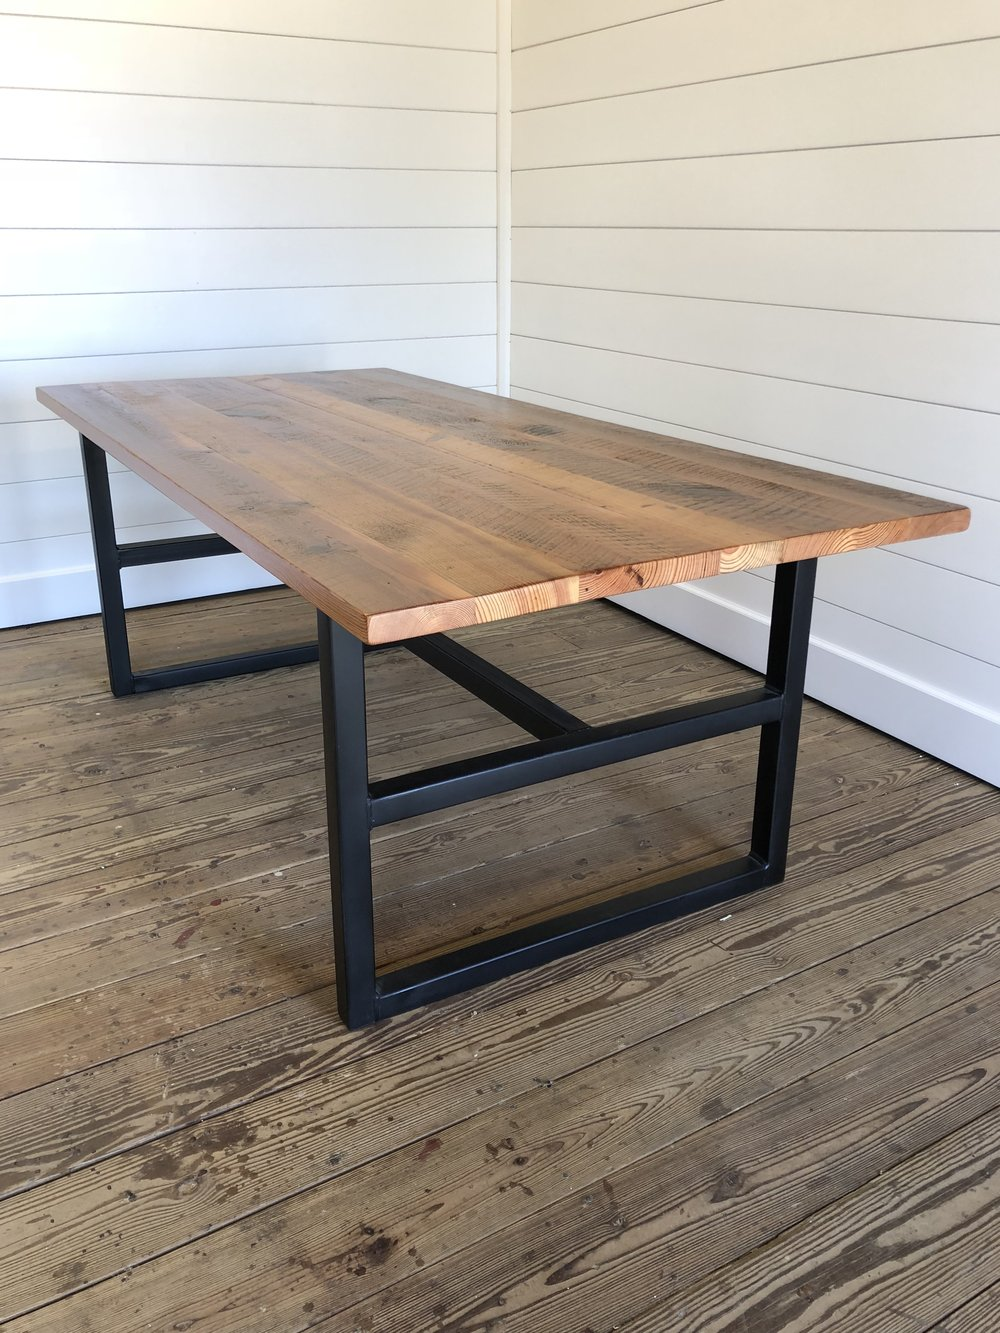 Appalachian Artisan Table